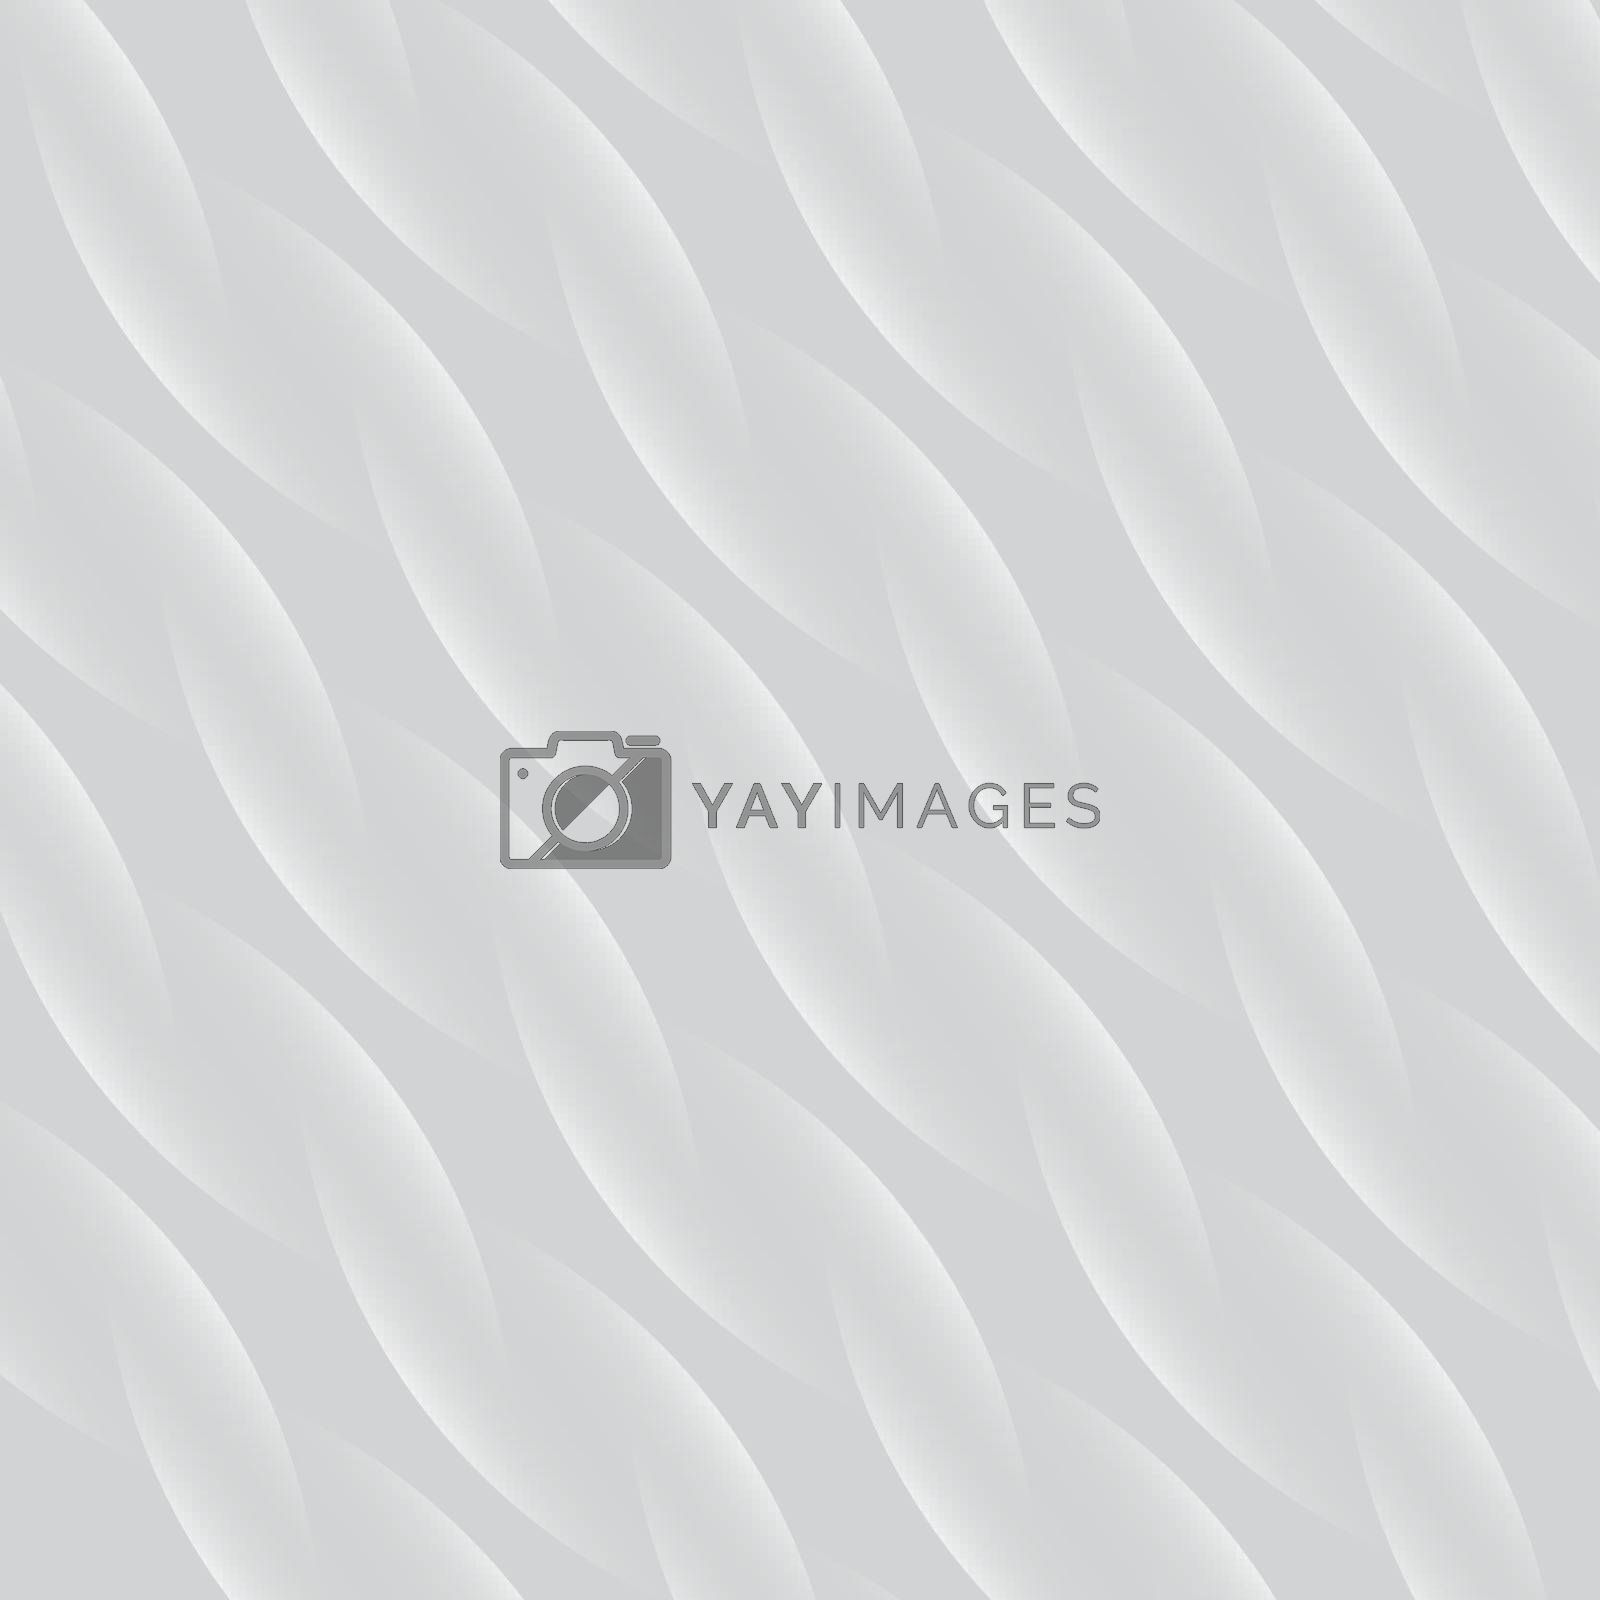 Abstract spiral pattern white and gray vector background, close up fabric fiber